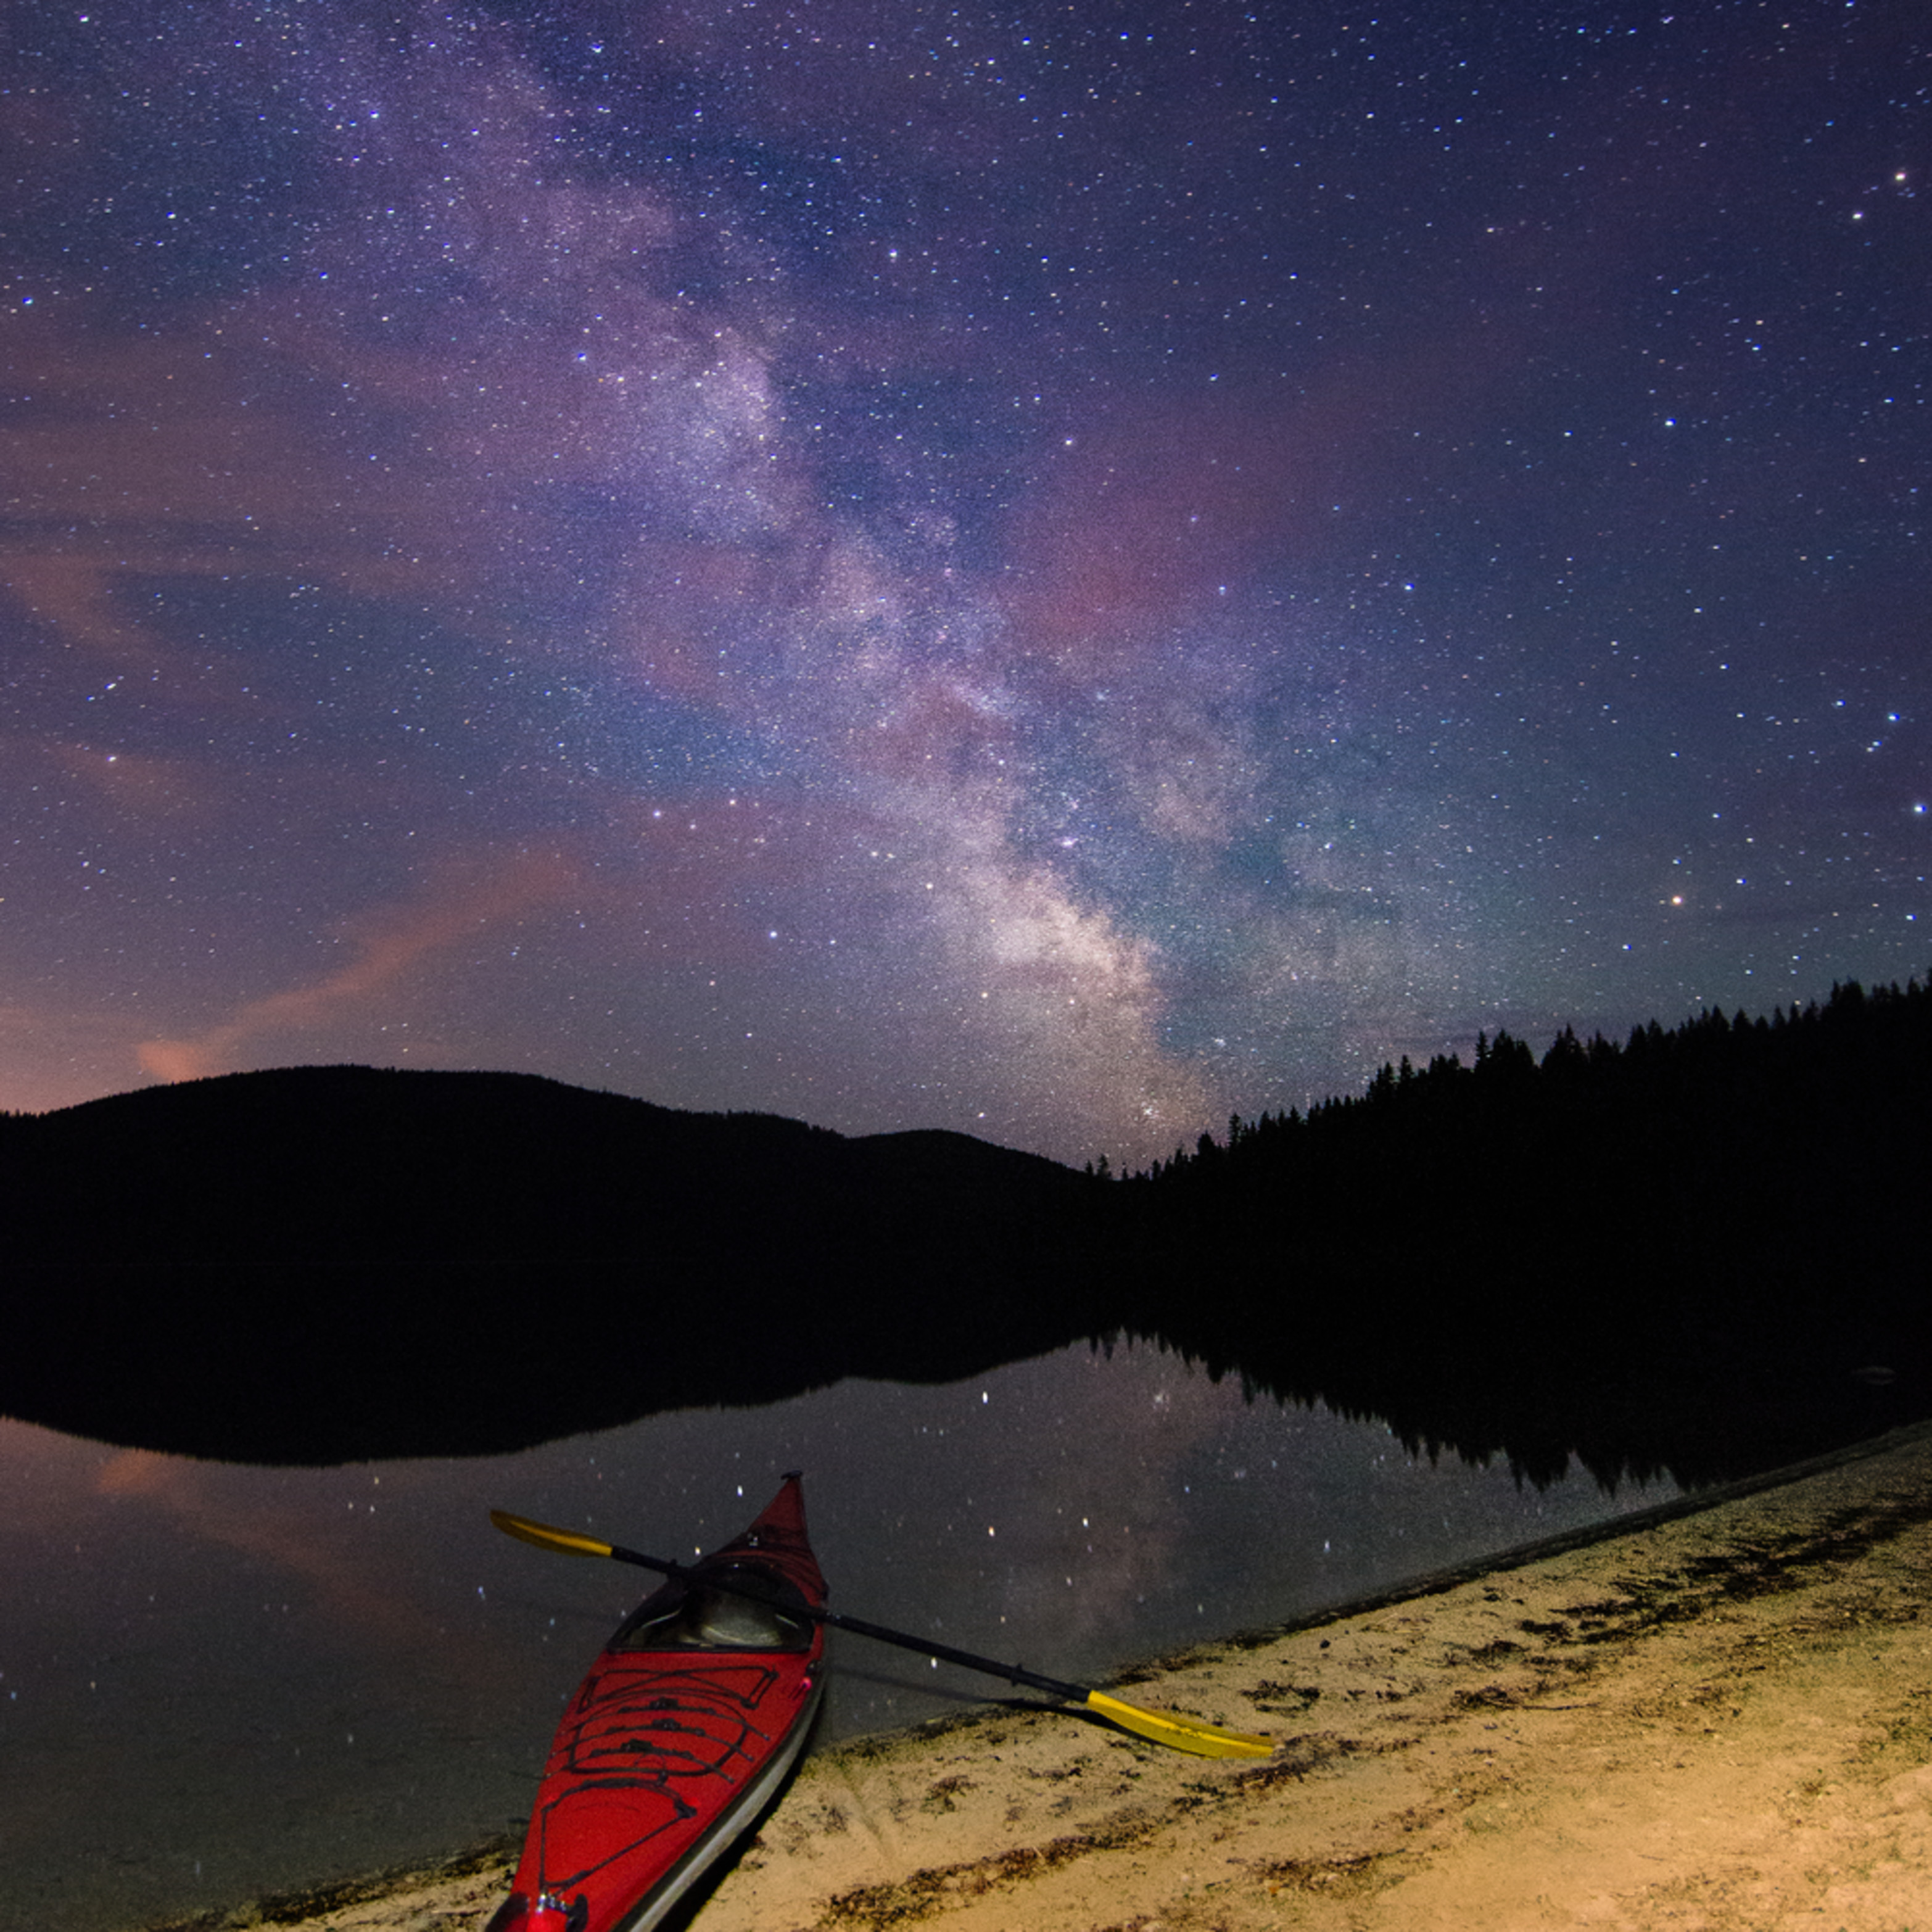 Milky way amor lake kayak heather k jones 2 2 eunkve